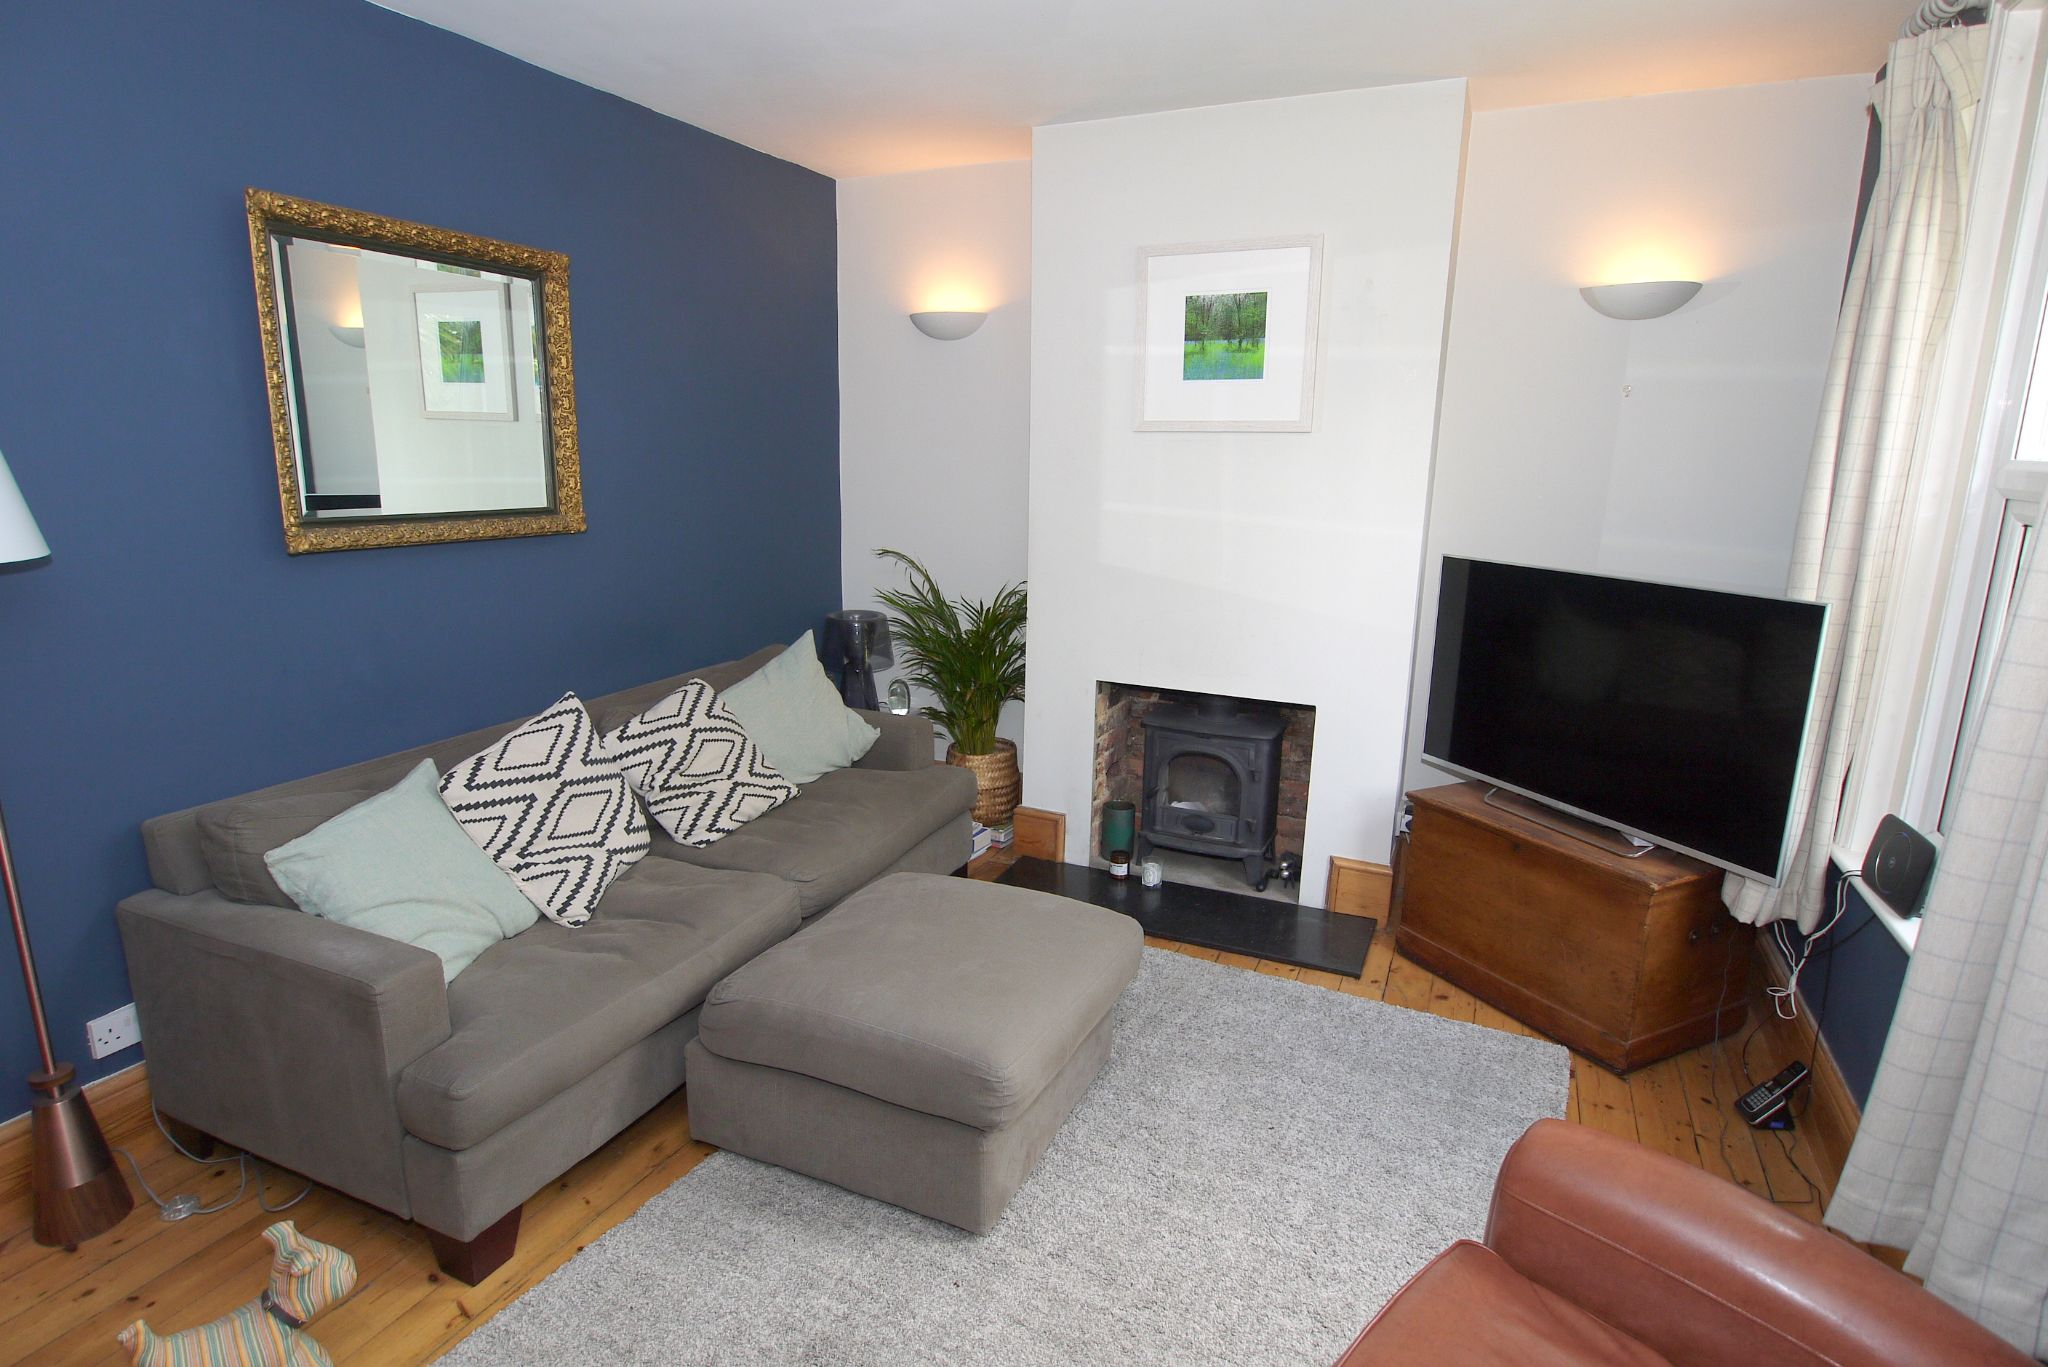 2 bedroom mid terraced house Sold in Seal - Photograph 4